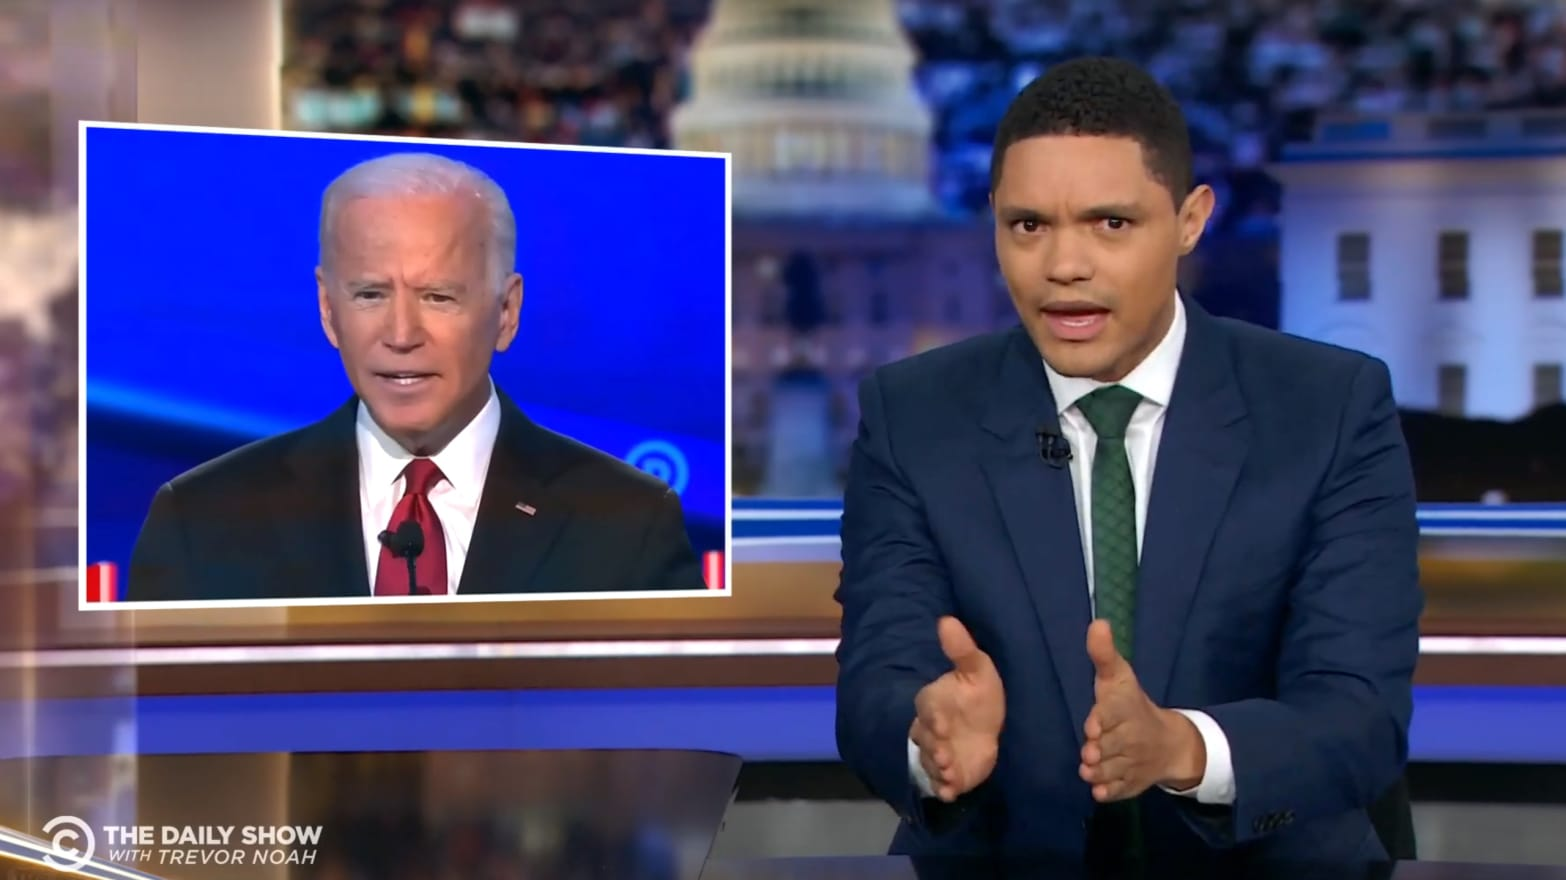 Trevor Noah Roasts Joe Biden Over Bad Democratic Debate Answer on Son Hunter